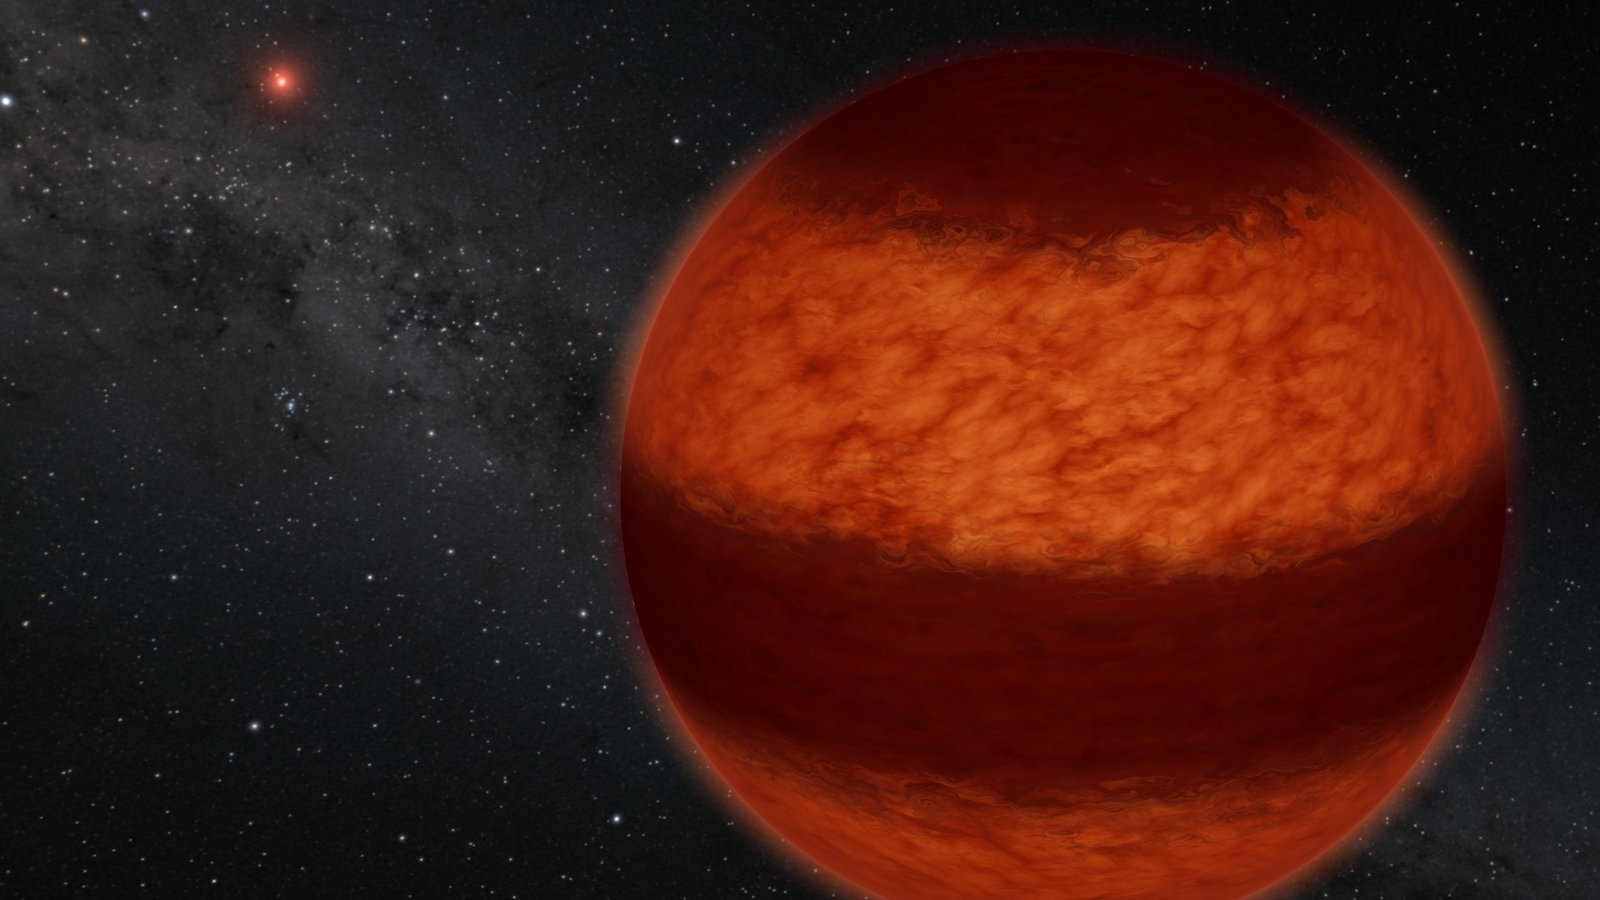 slide 2 - Artist's rendering of a brown dwarf